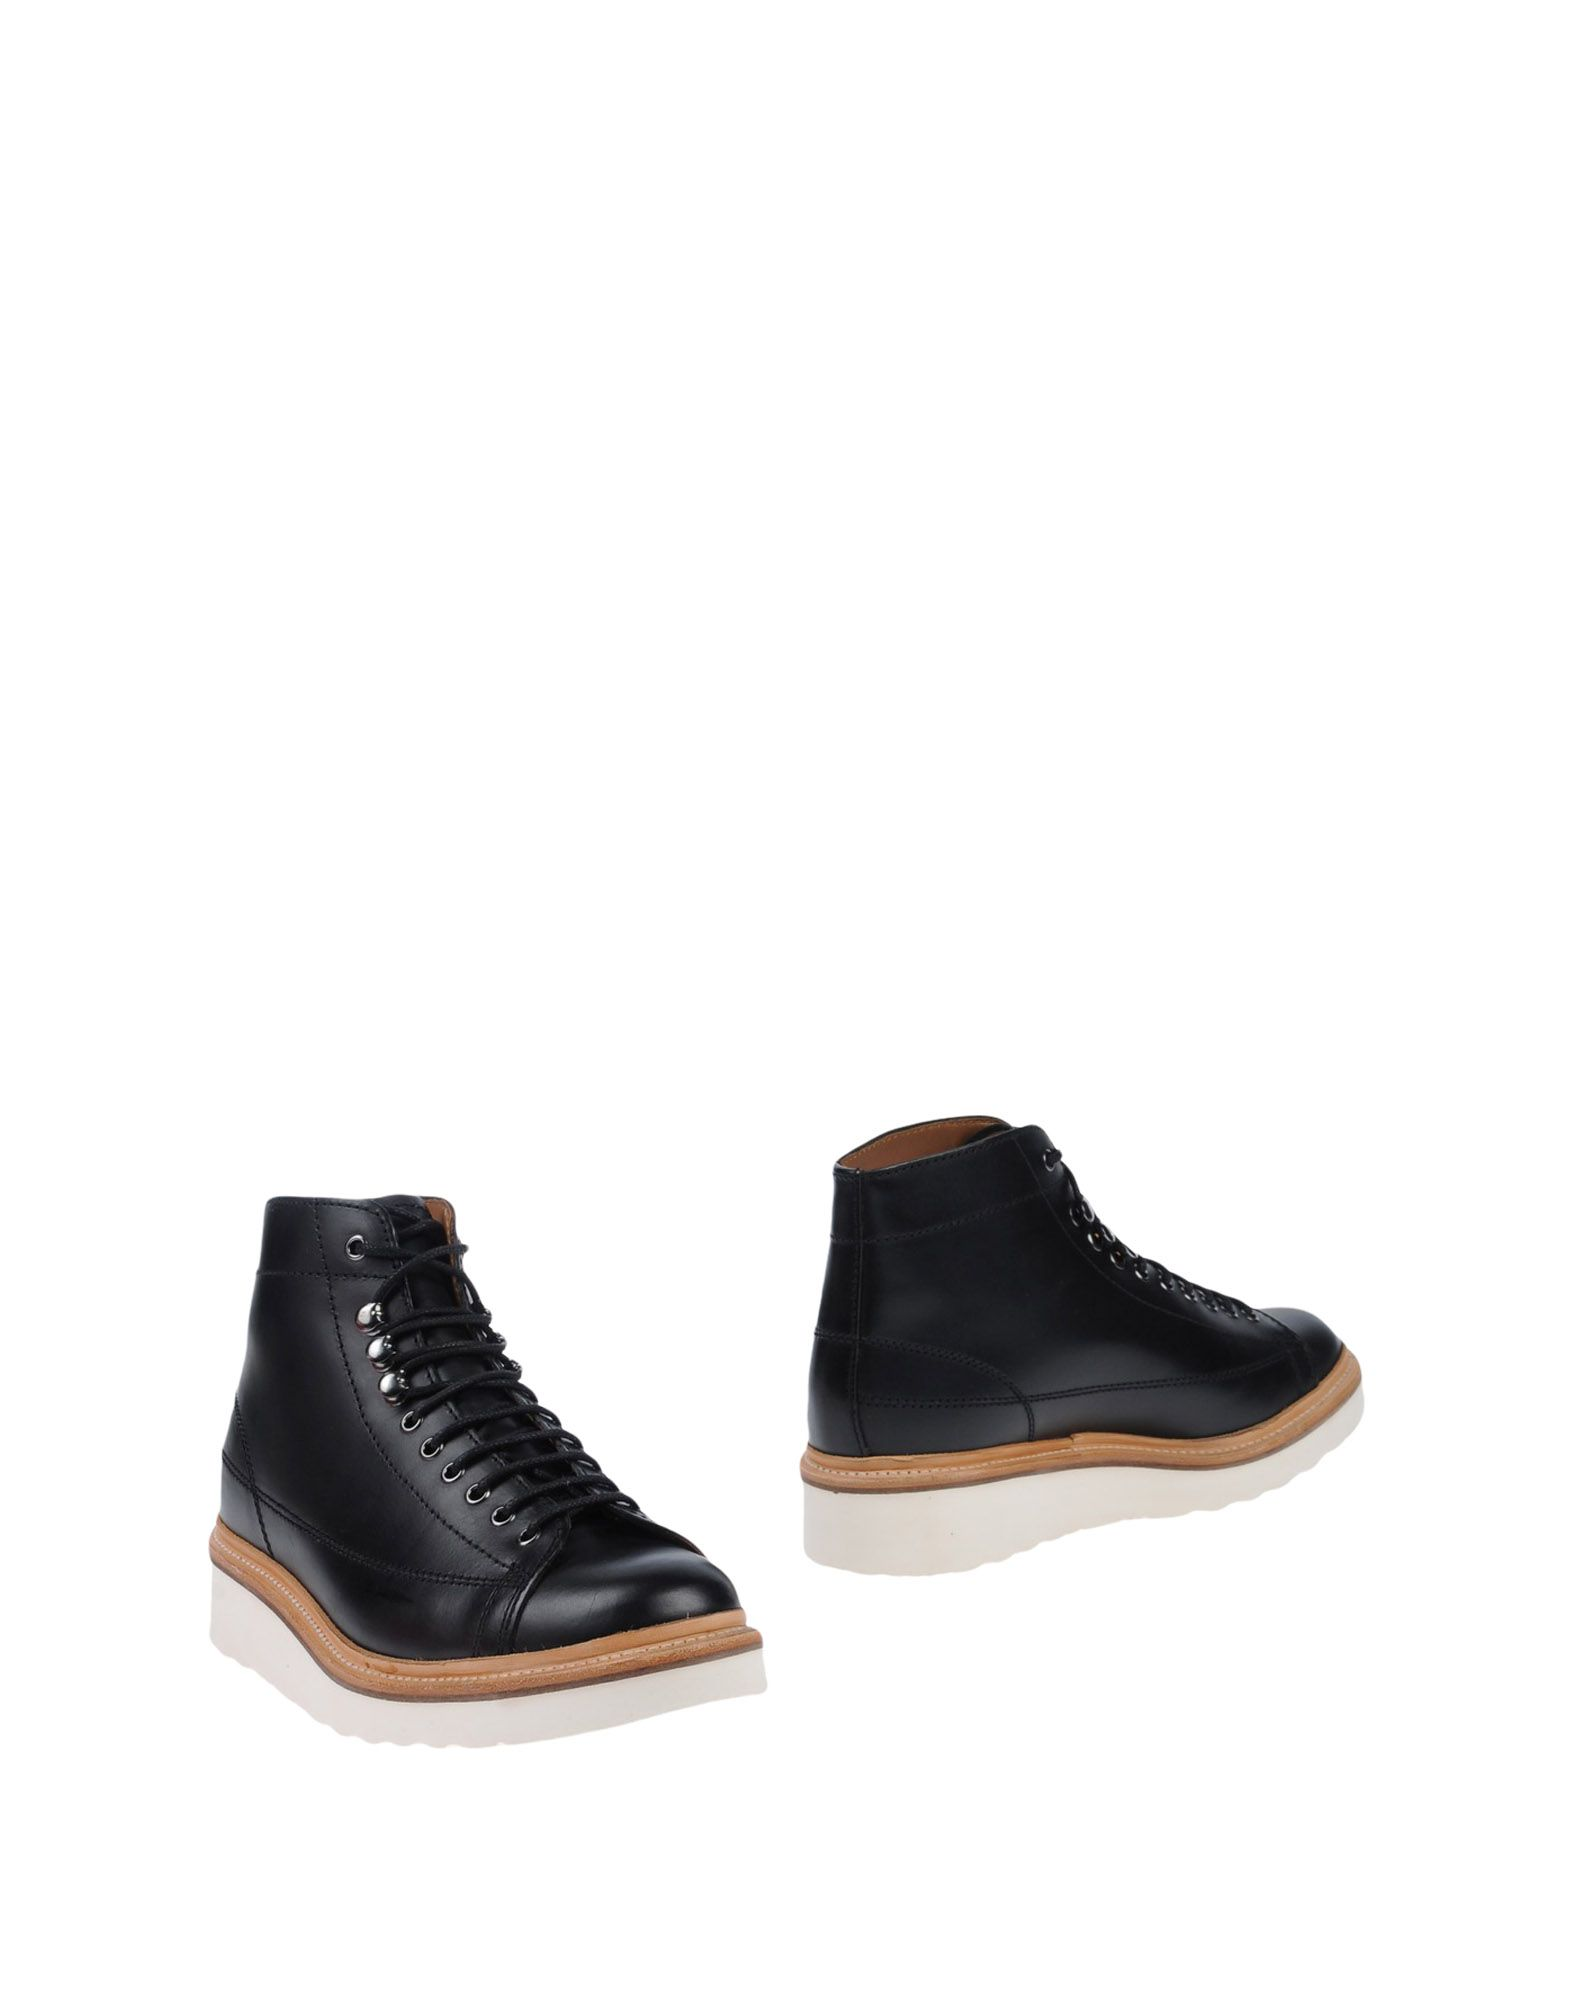 Grenson Boots - Men Grenson Boots online on  Canada Canada Canada - 11506100GJ c89fe6